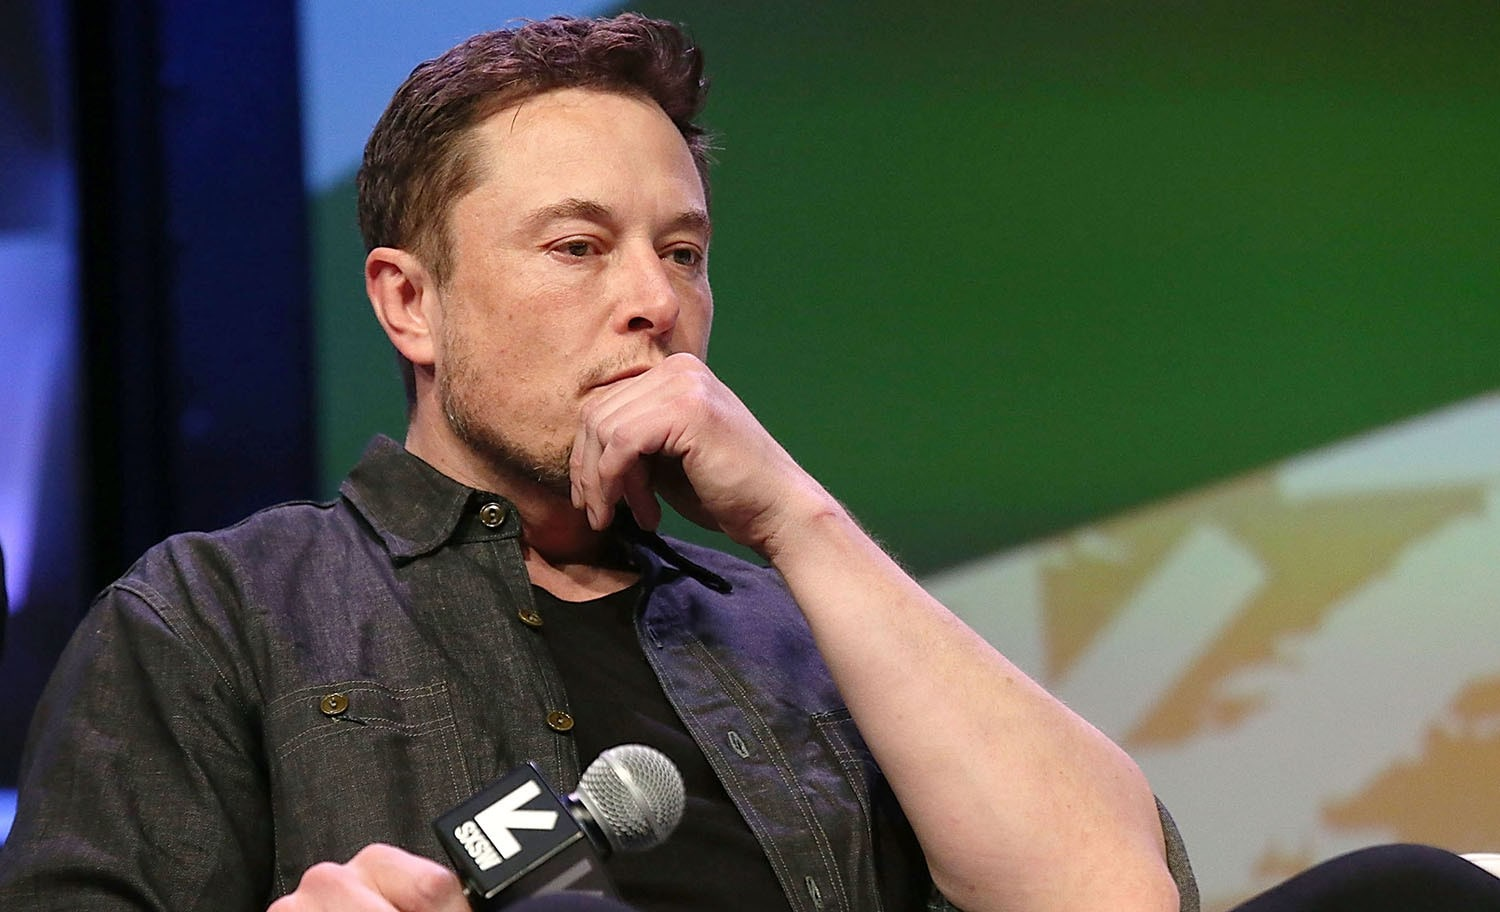 Tesla investors demand apology from Musk over 'pedo' comment | The Thaiger